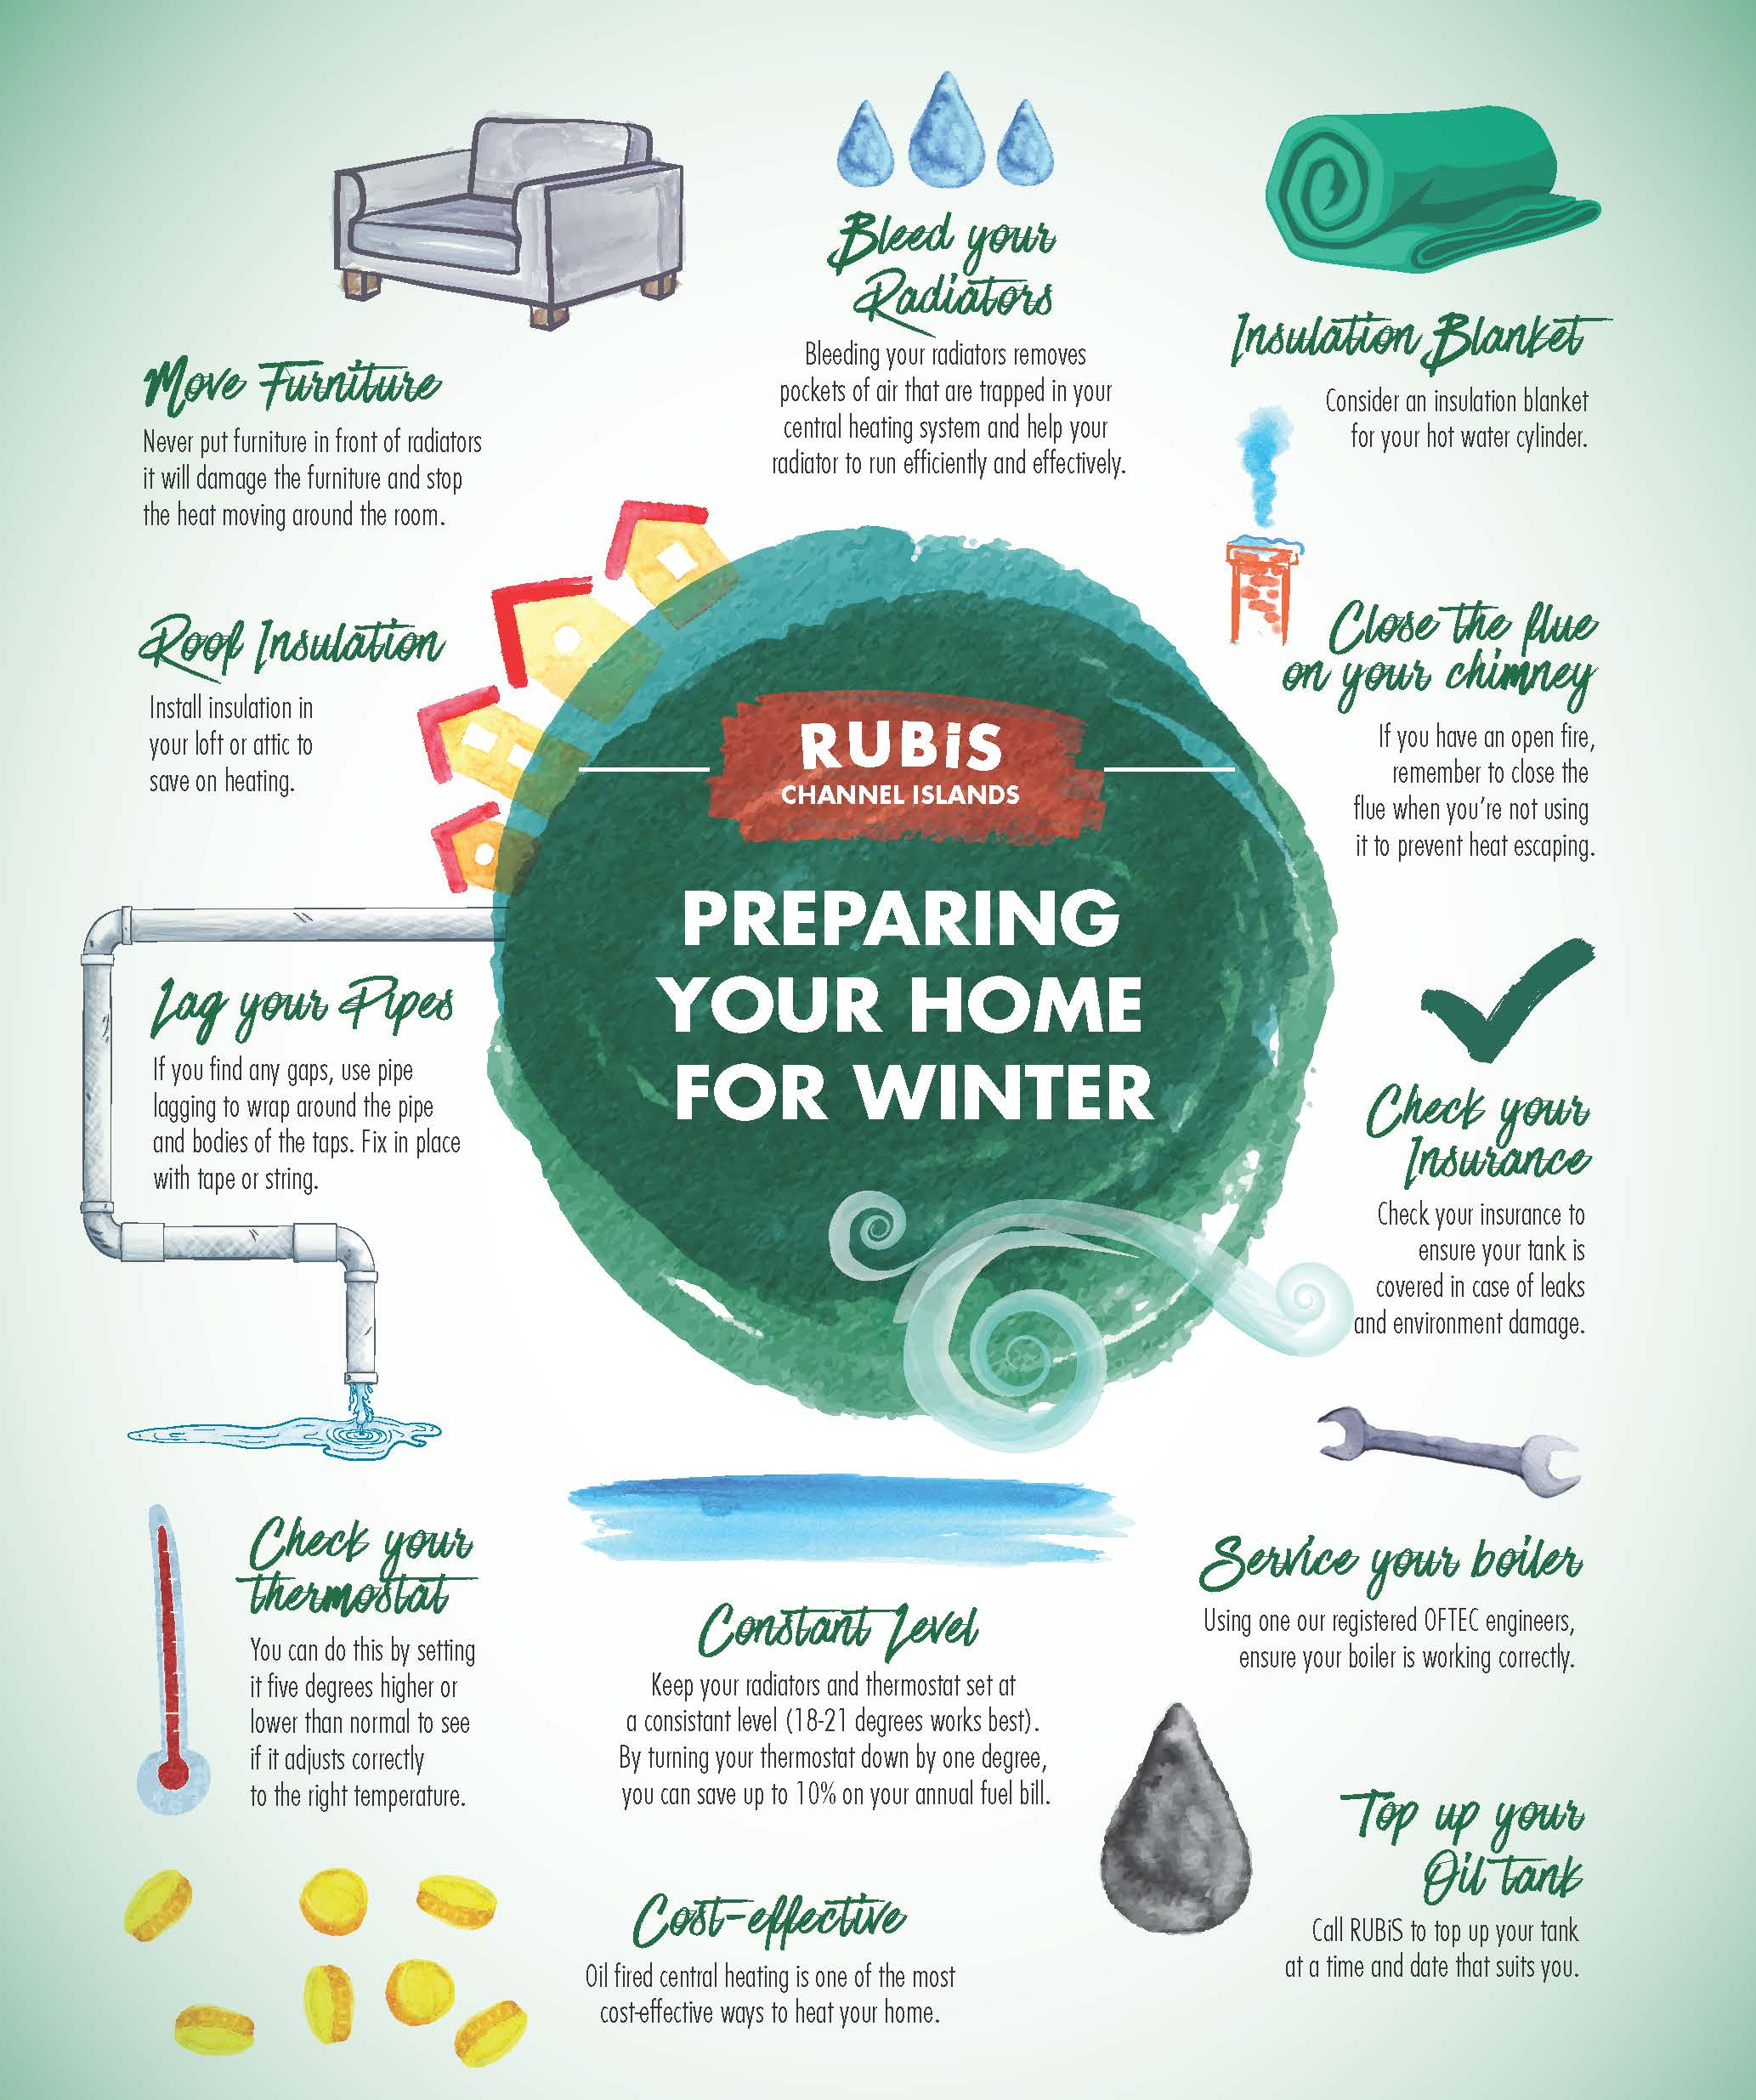 Preparing your Home for Winter | Rubis Channel Islands